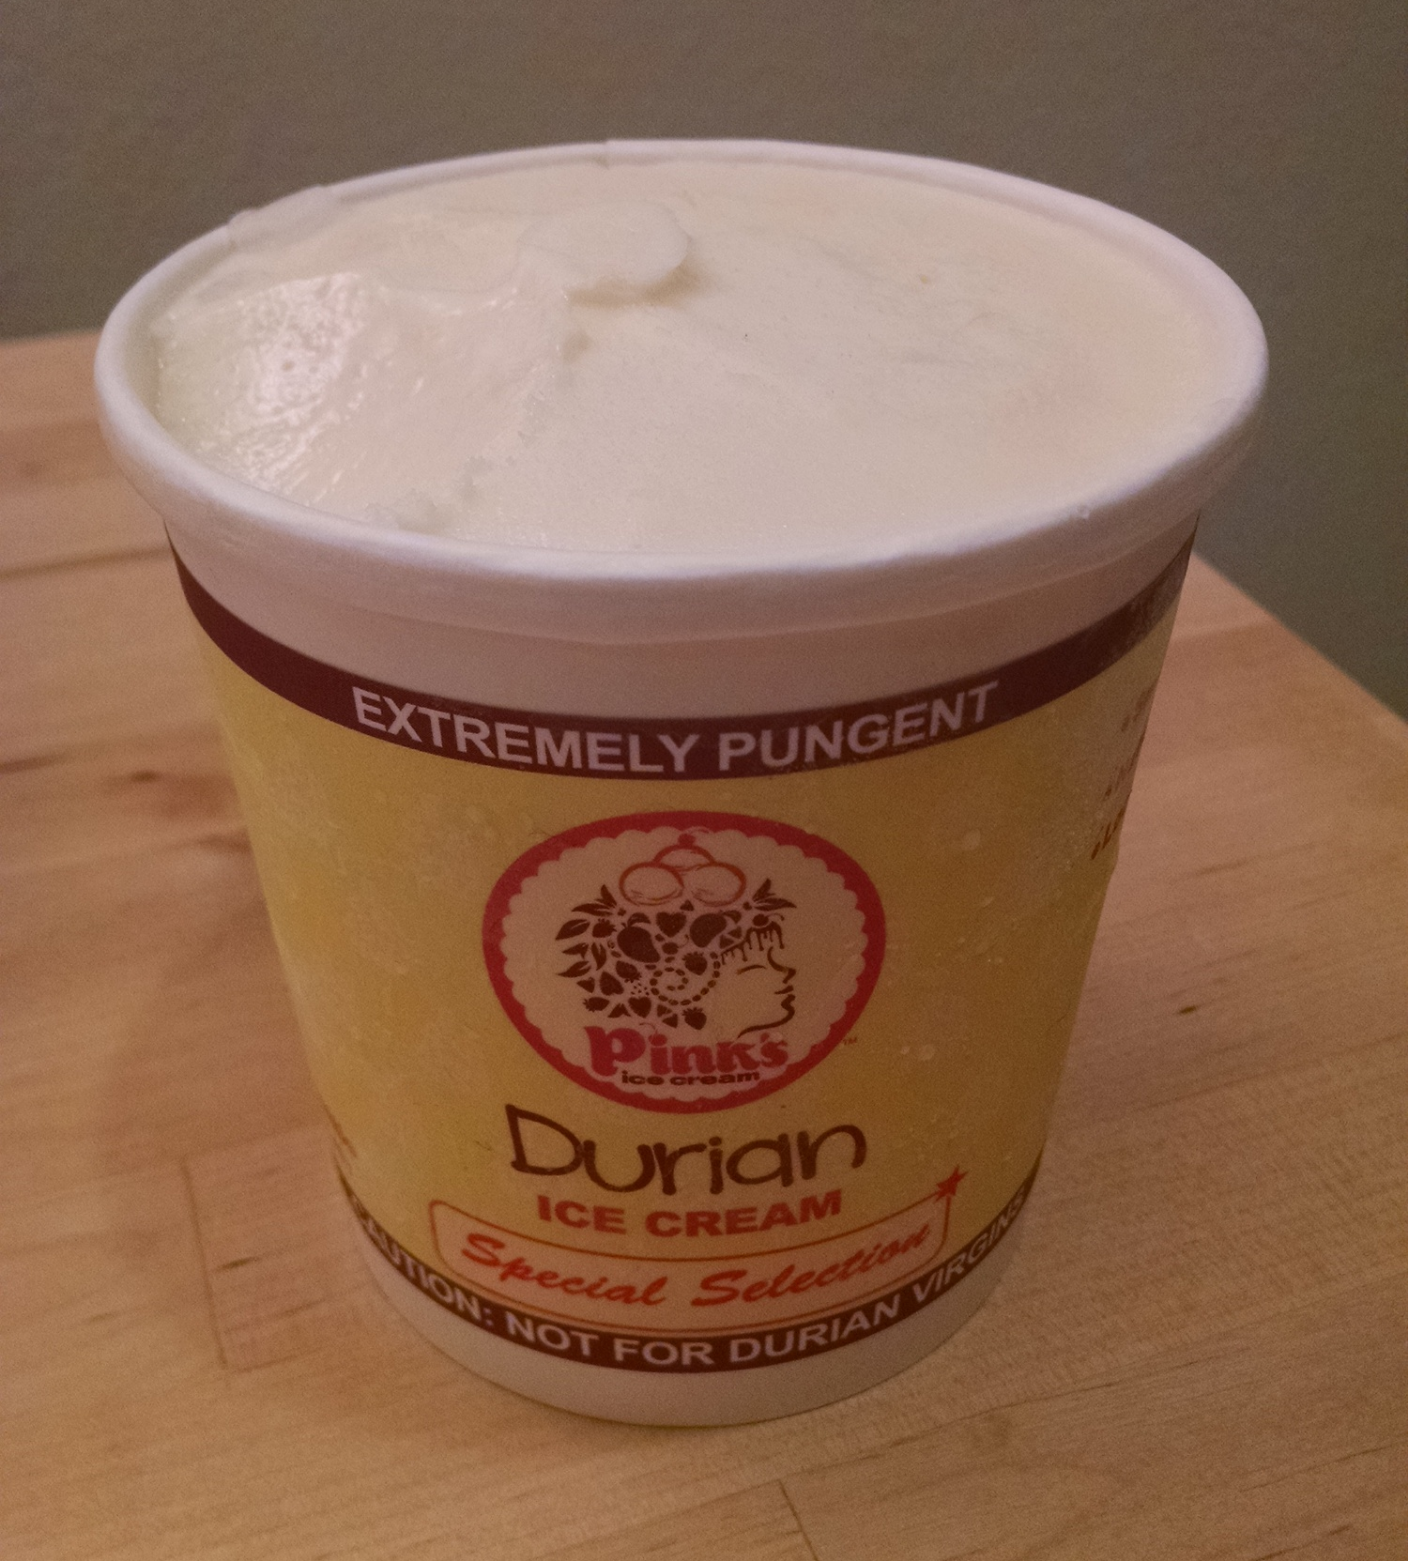 Available at Asian grocery stores in the Seattle area, or at a food truck that roams downtown Seattle